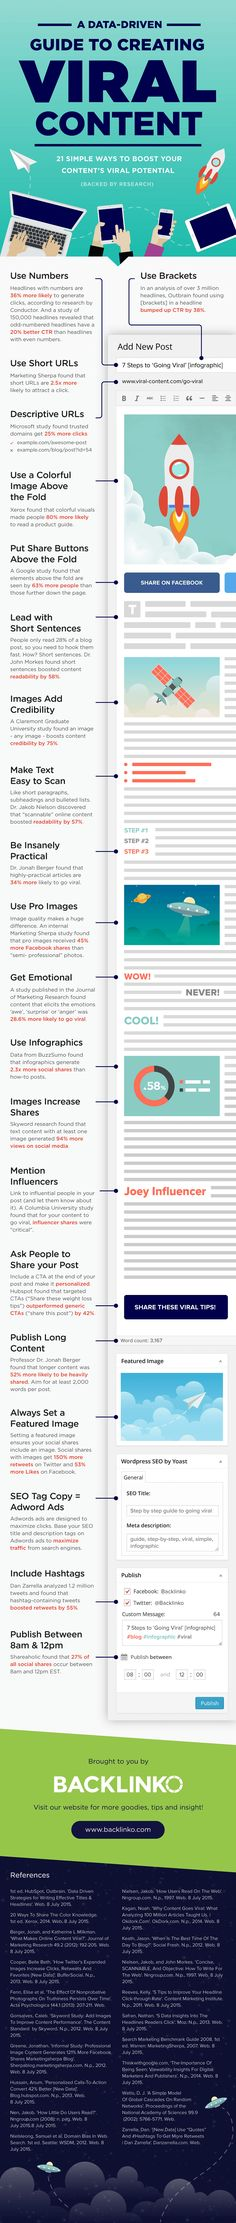 21 simple ways to Boost your content's viral potential - #infographic